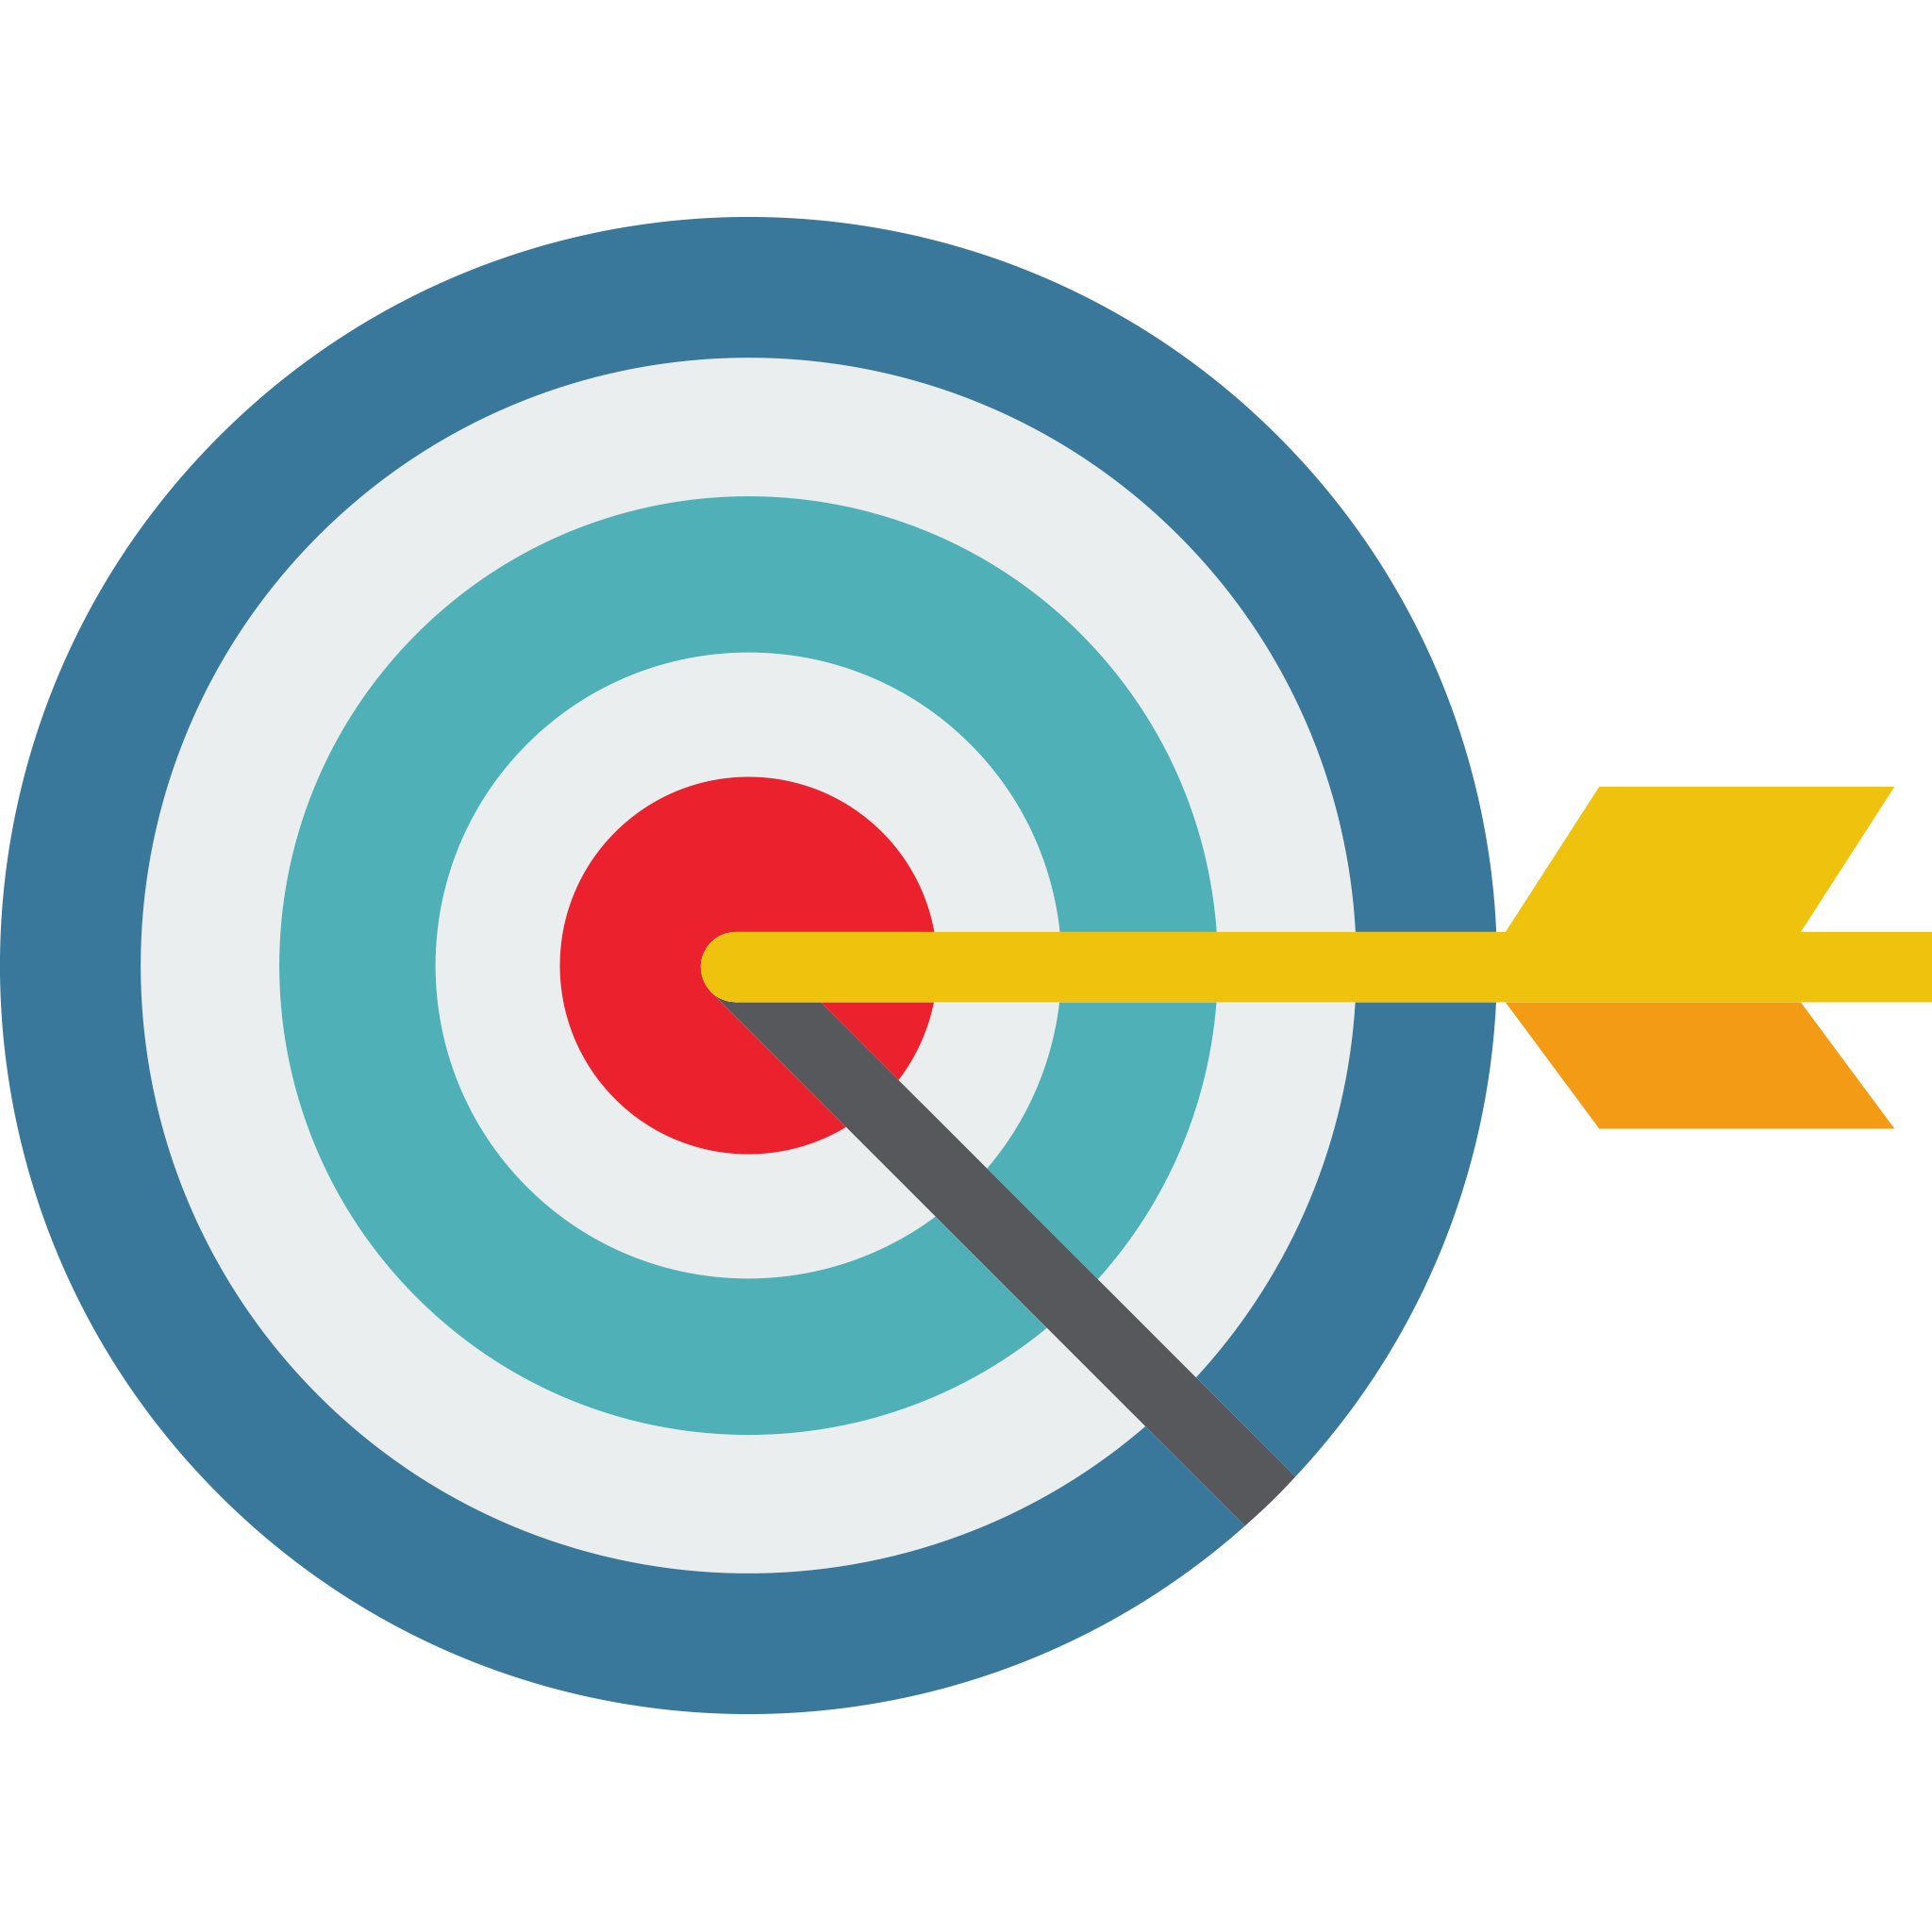 svg library download Archery target clipart. Png transparent images all